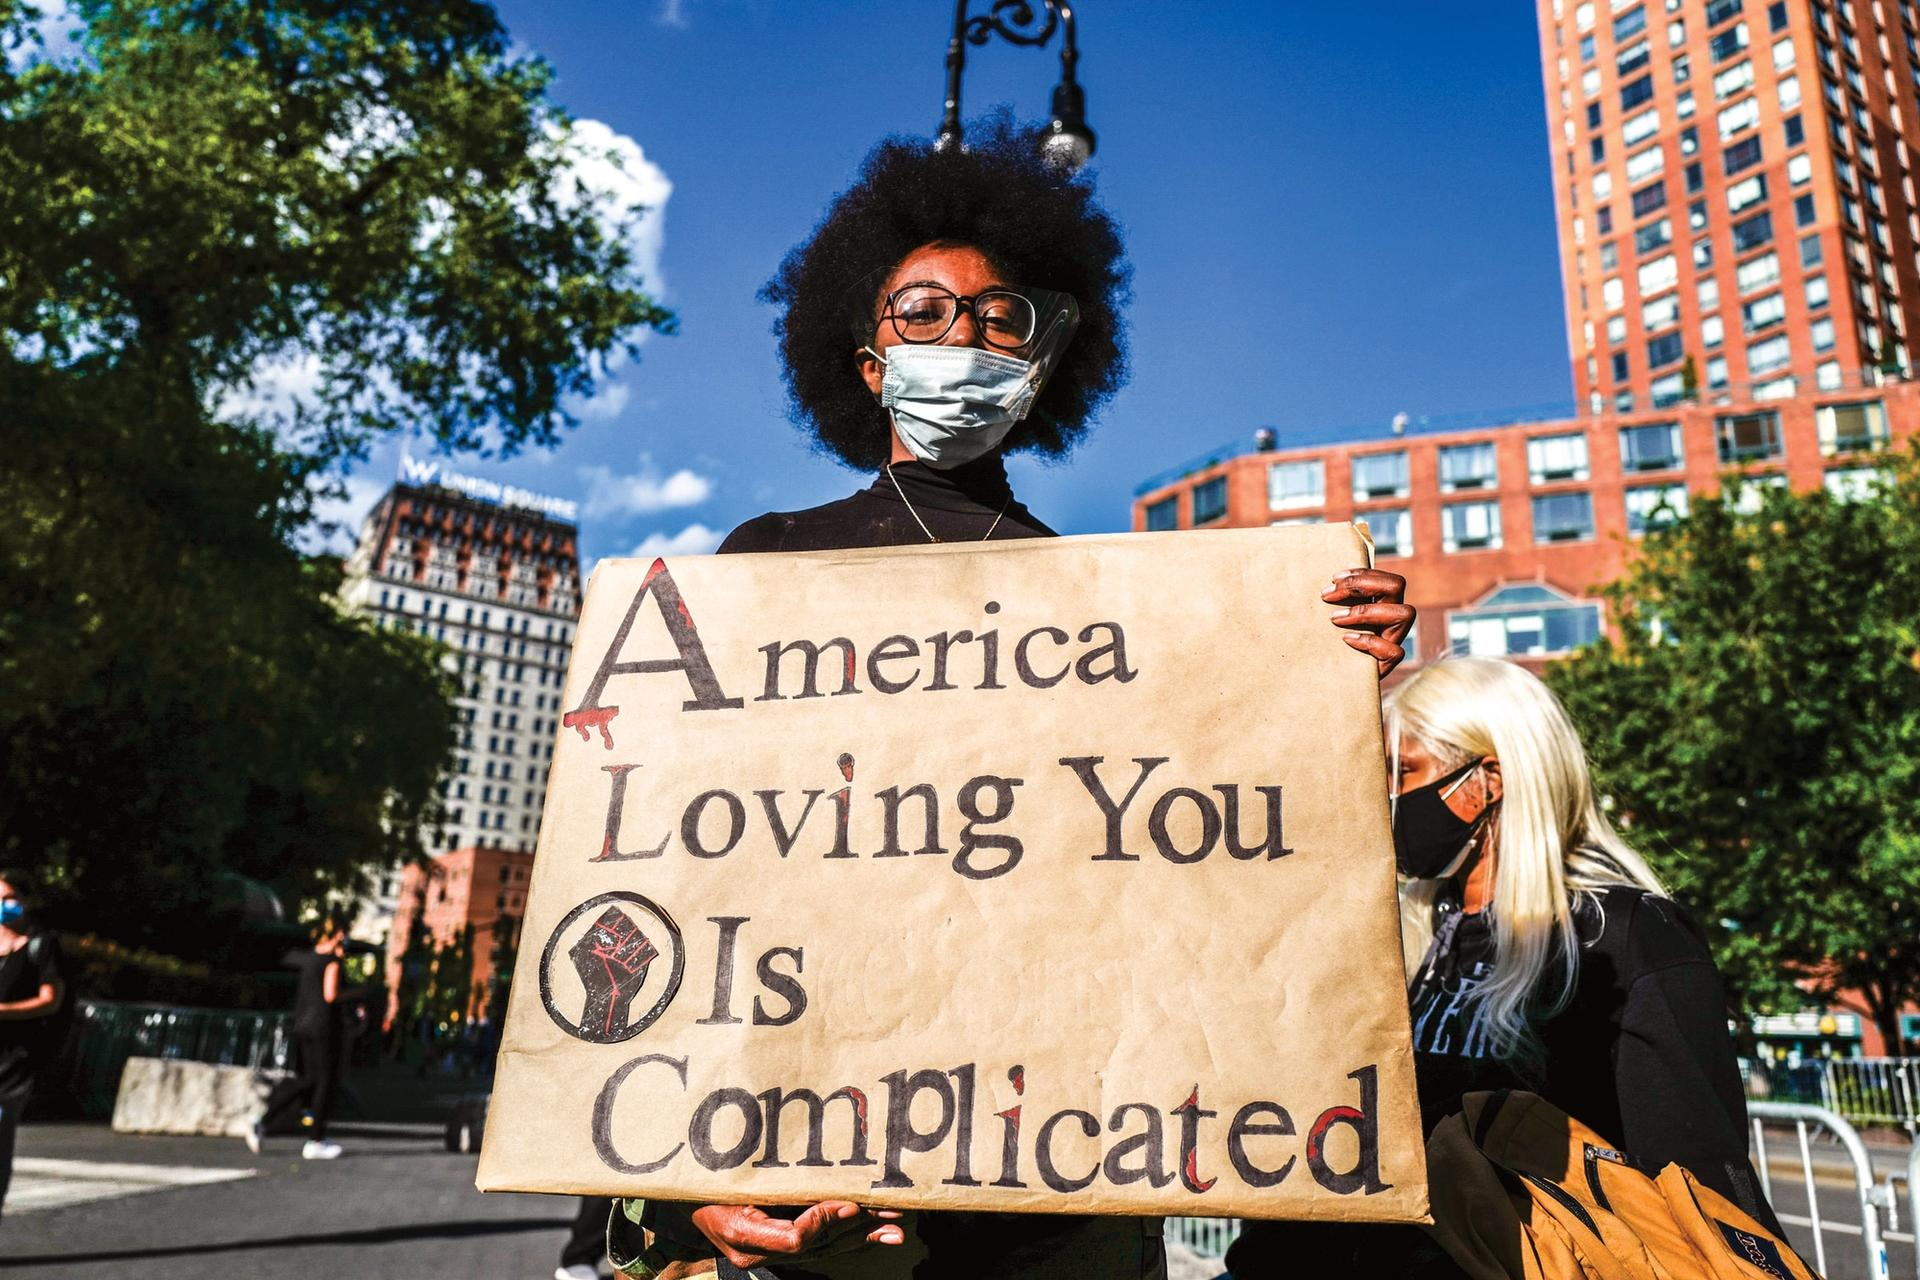 """A mask wearer in Union Square, New York, last June. Photographer Francesca Magnani observes that masks have come to assume """"multiple functions"""" beyond basic health protection © Francesca Magnani; courtesy of the National Museum of American History"""